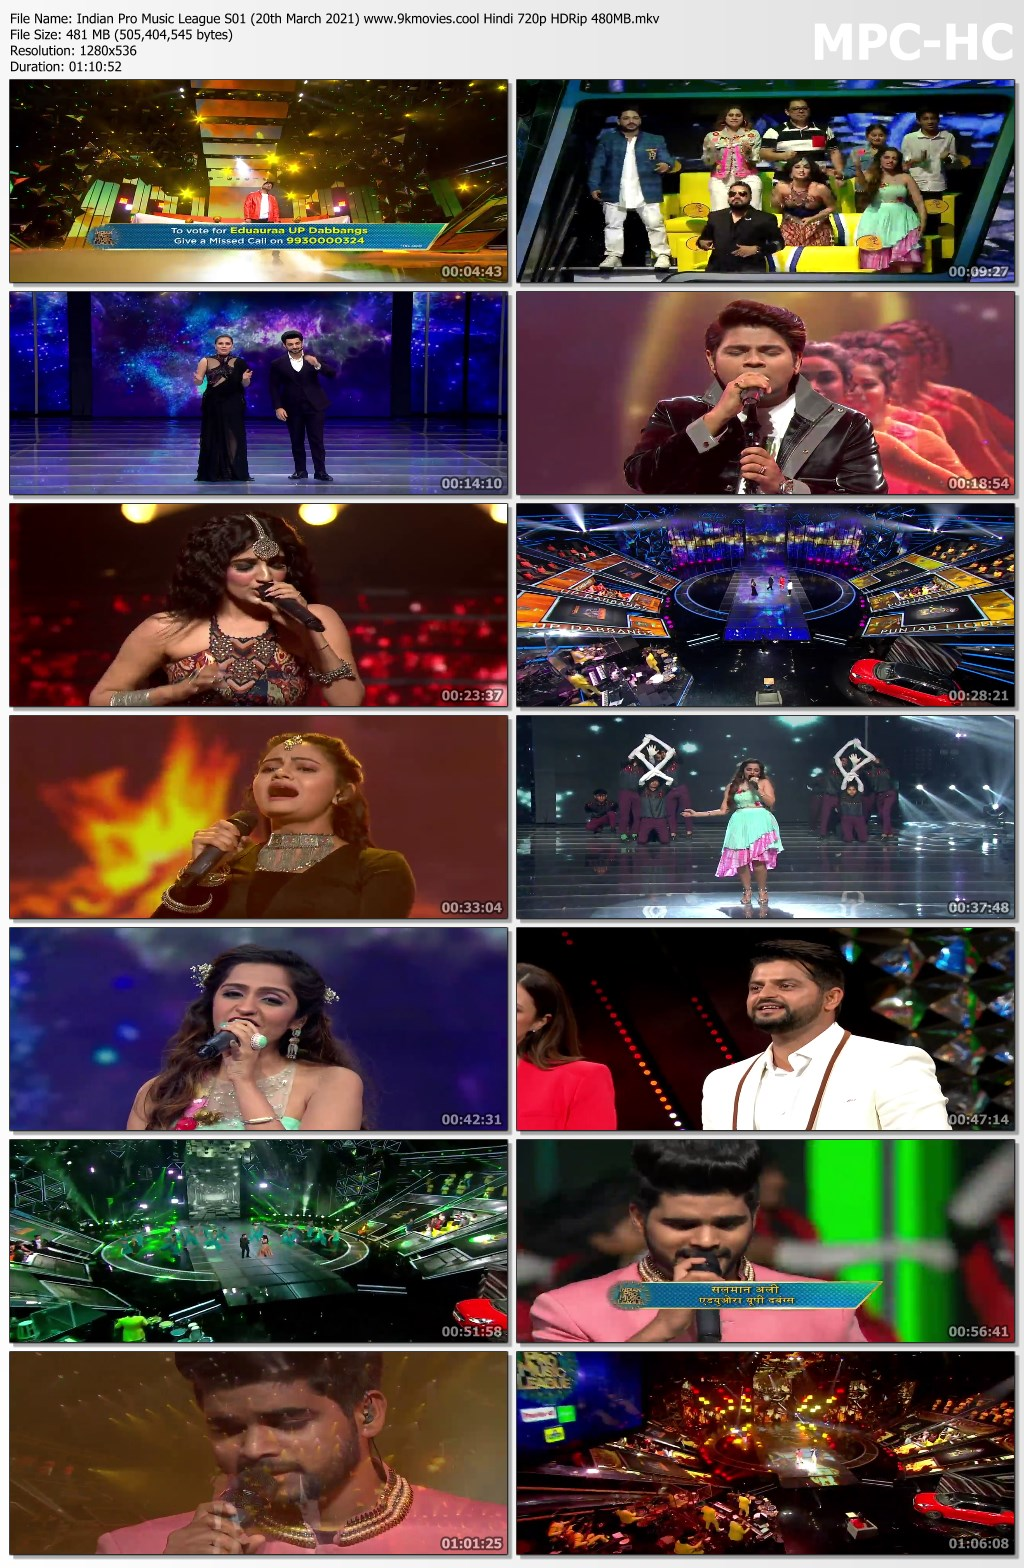 Download Indian Pro Music League S01 (20th March 2021) Hindi 720p HDRip 480MB